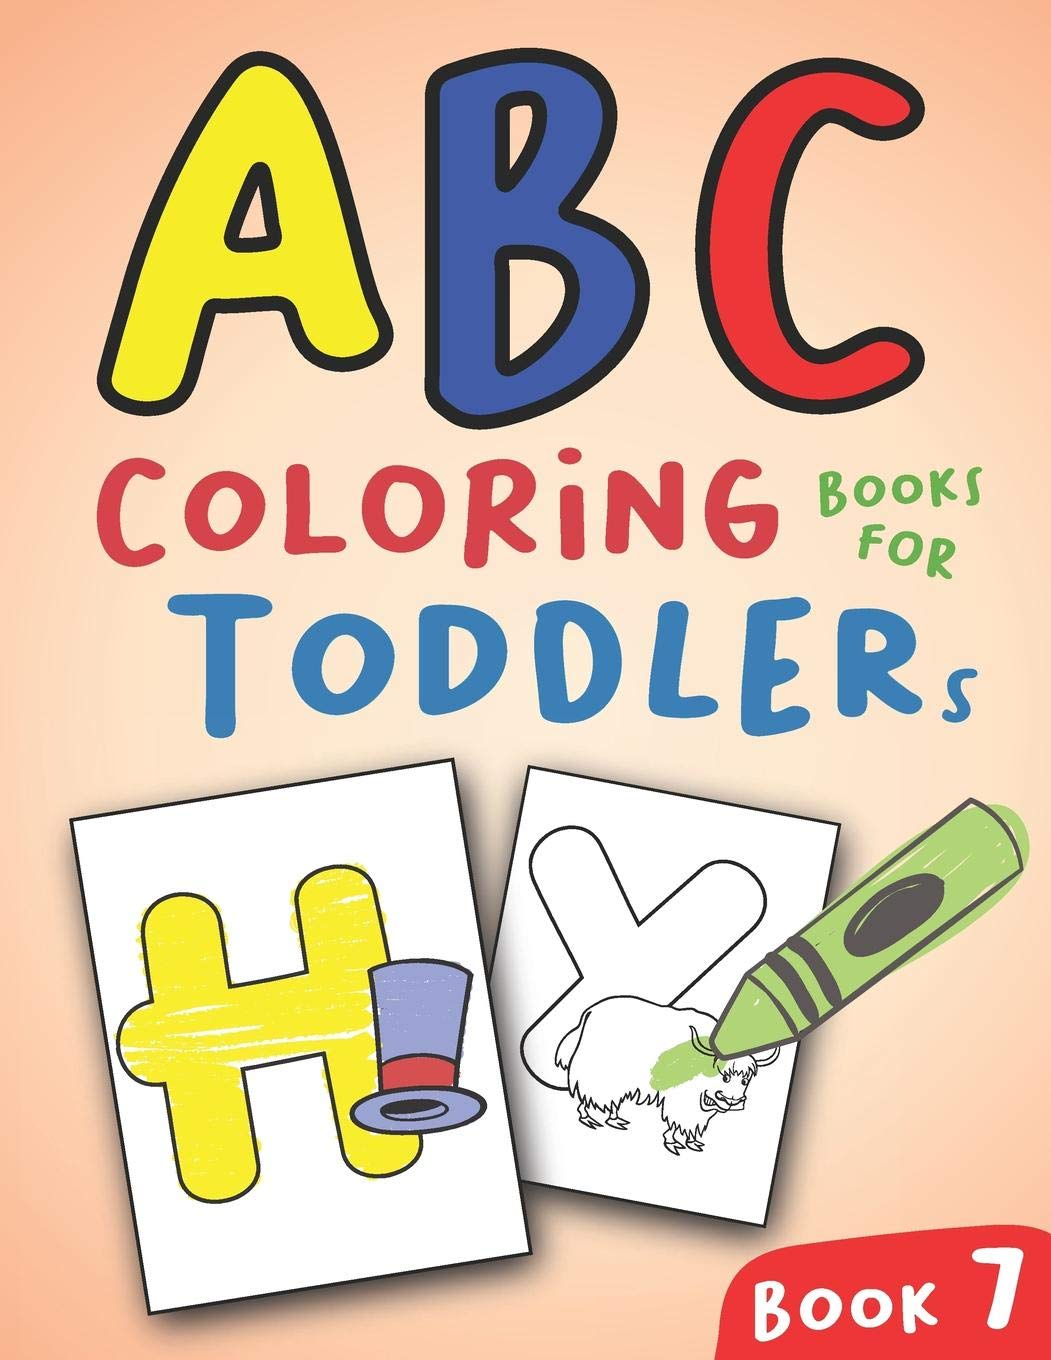 - ABC Coloring Books For Toddlers Book7: A To Z Coloring Sheets